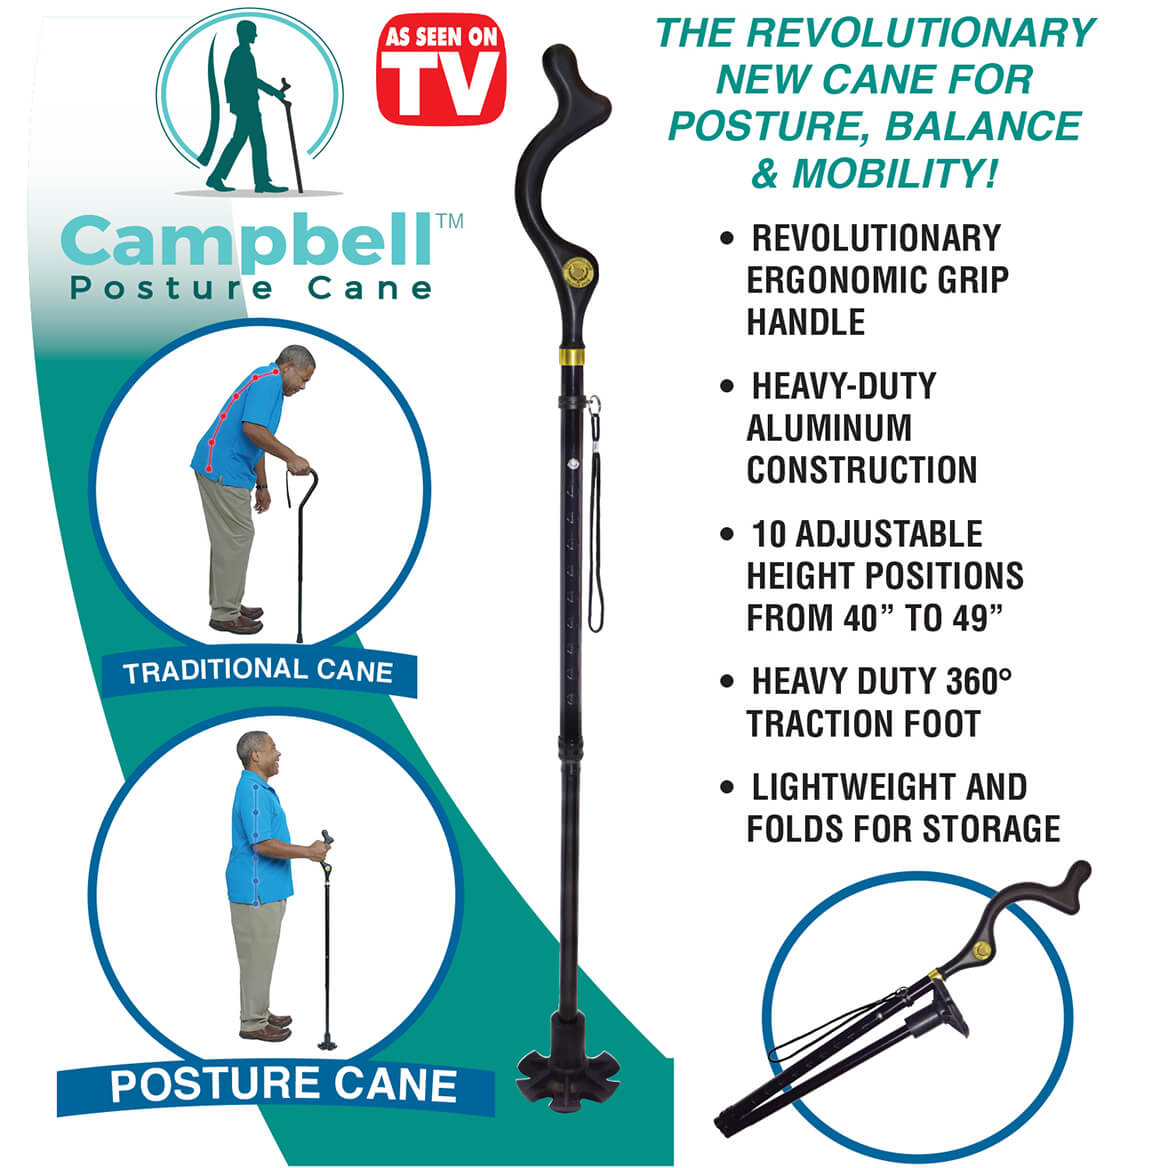 As Seen on TV Campbell Posture Cane-368020